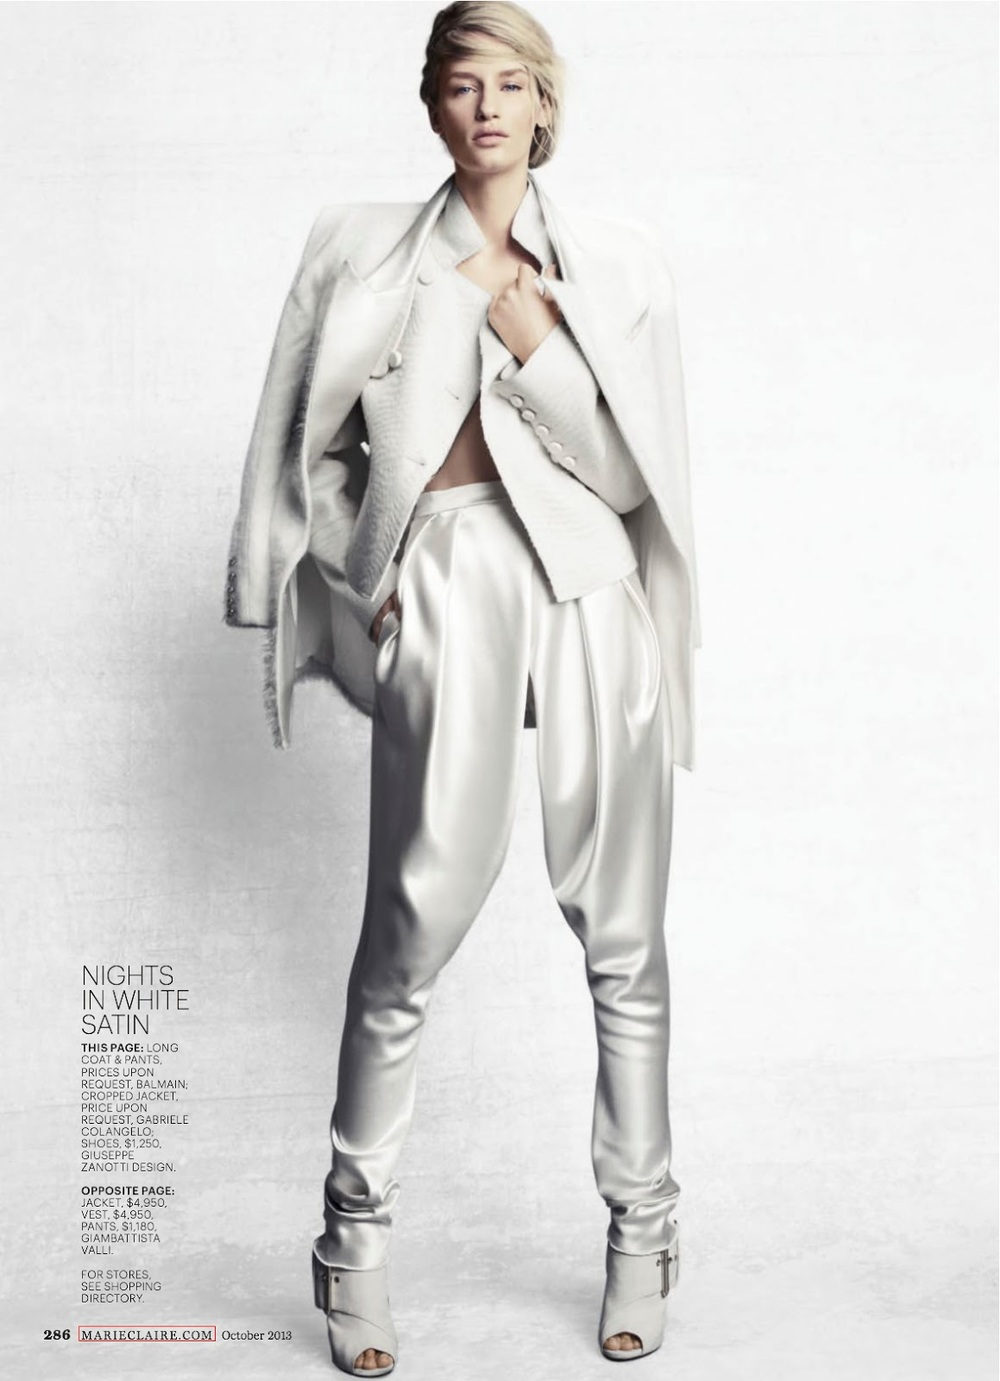 Nights in White Satin: gorgeous satin pants from Balmain. Photo via Marie Claire magazine